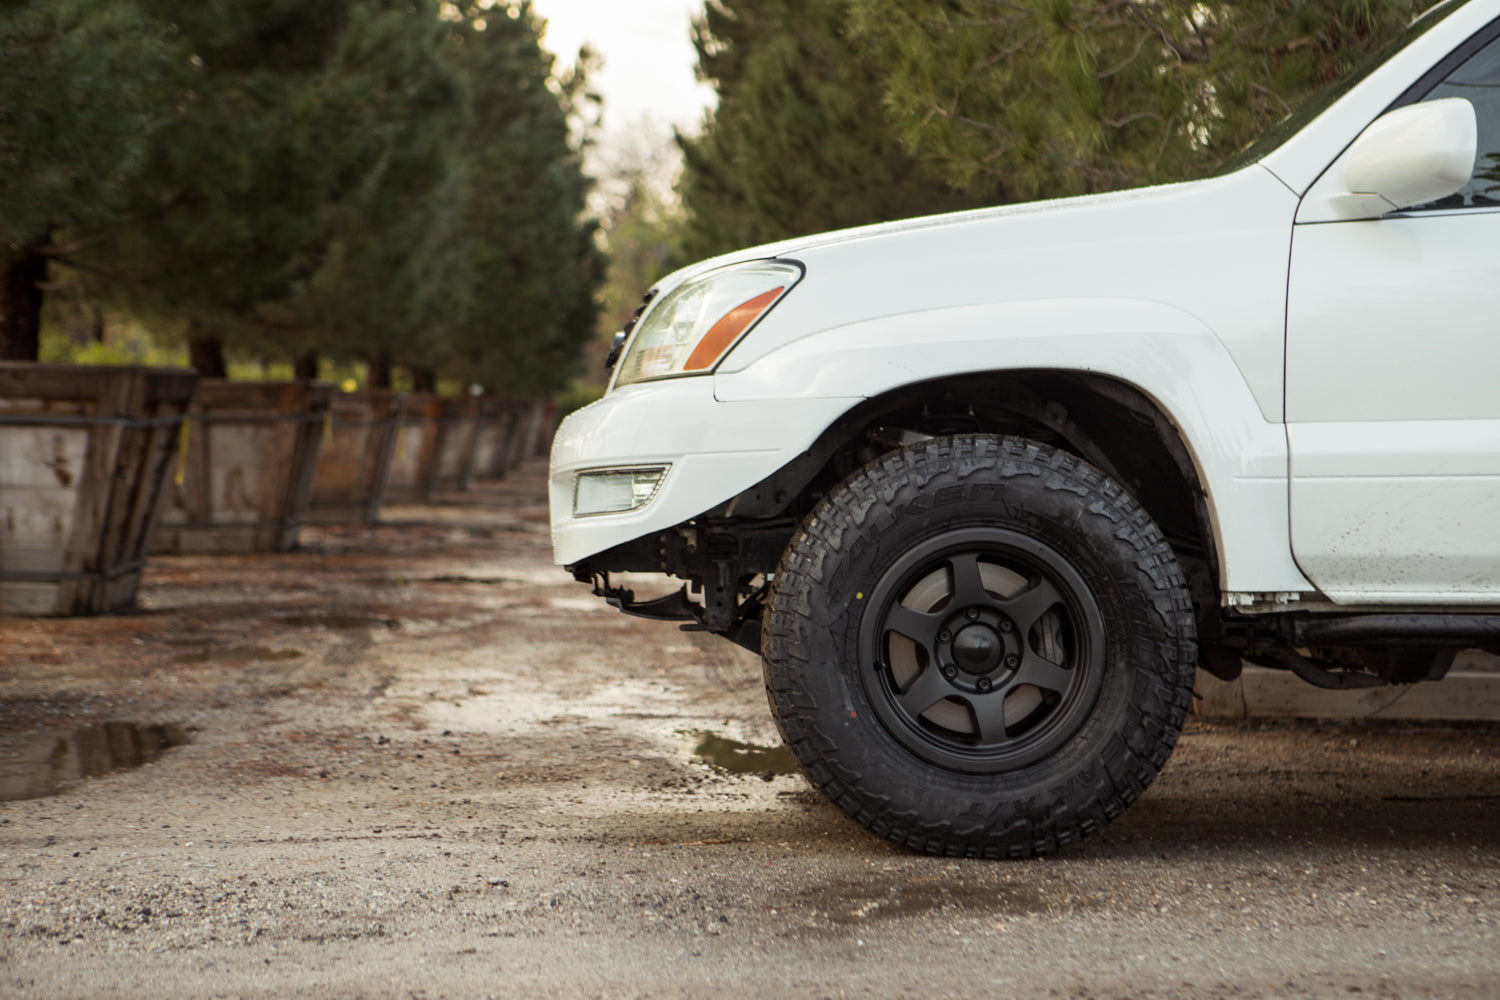 Offroad Monoblock Forged Wheels: Lighter and Stronger